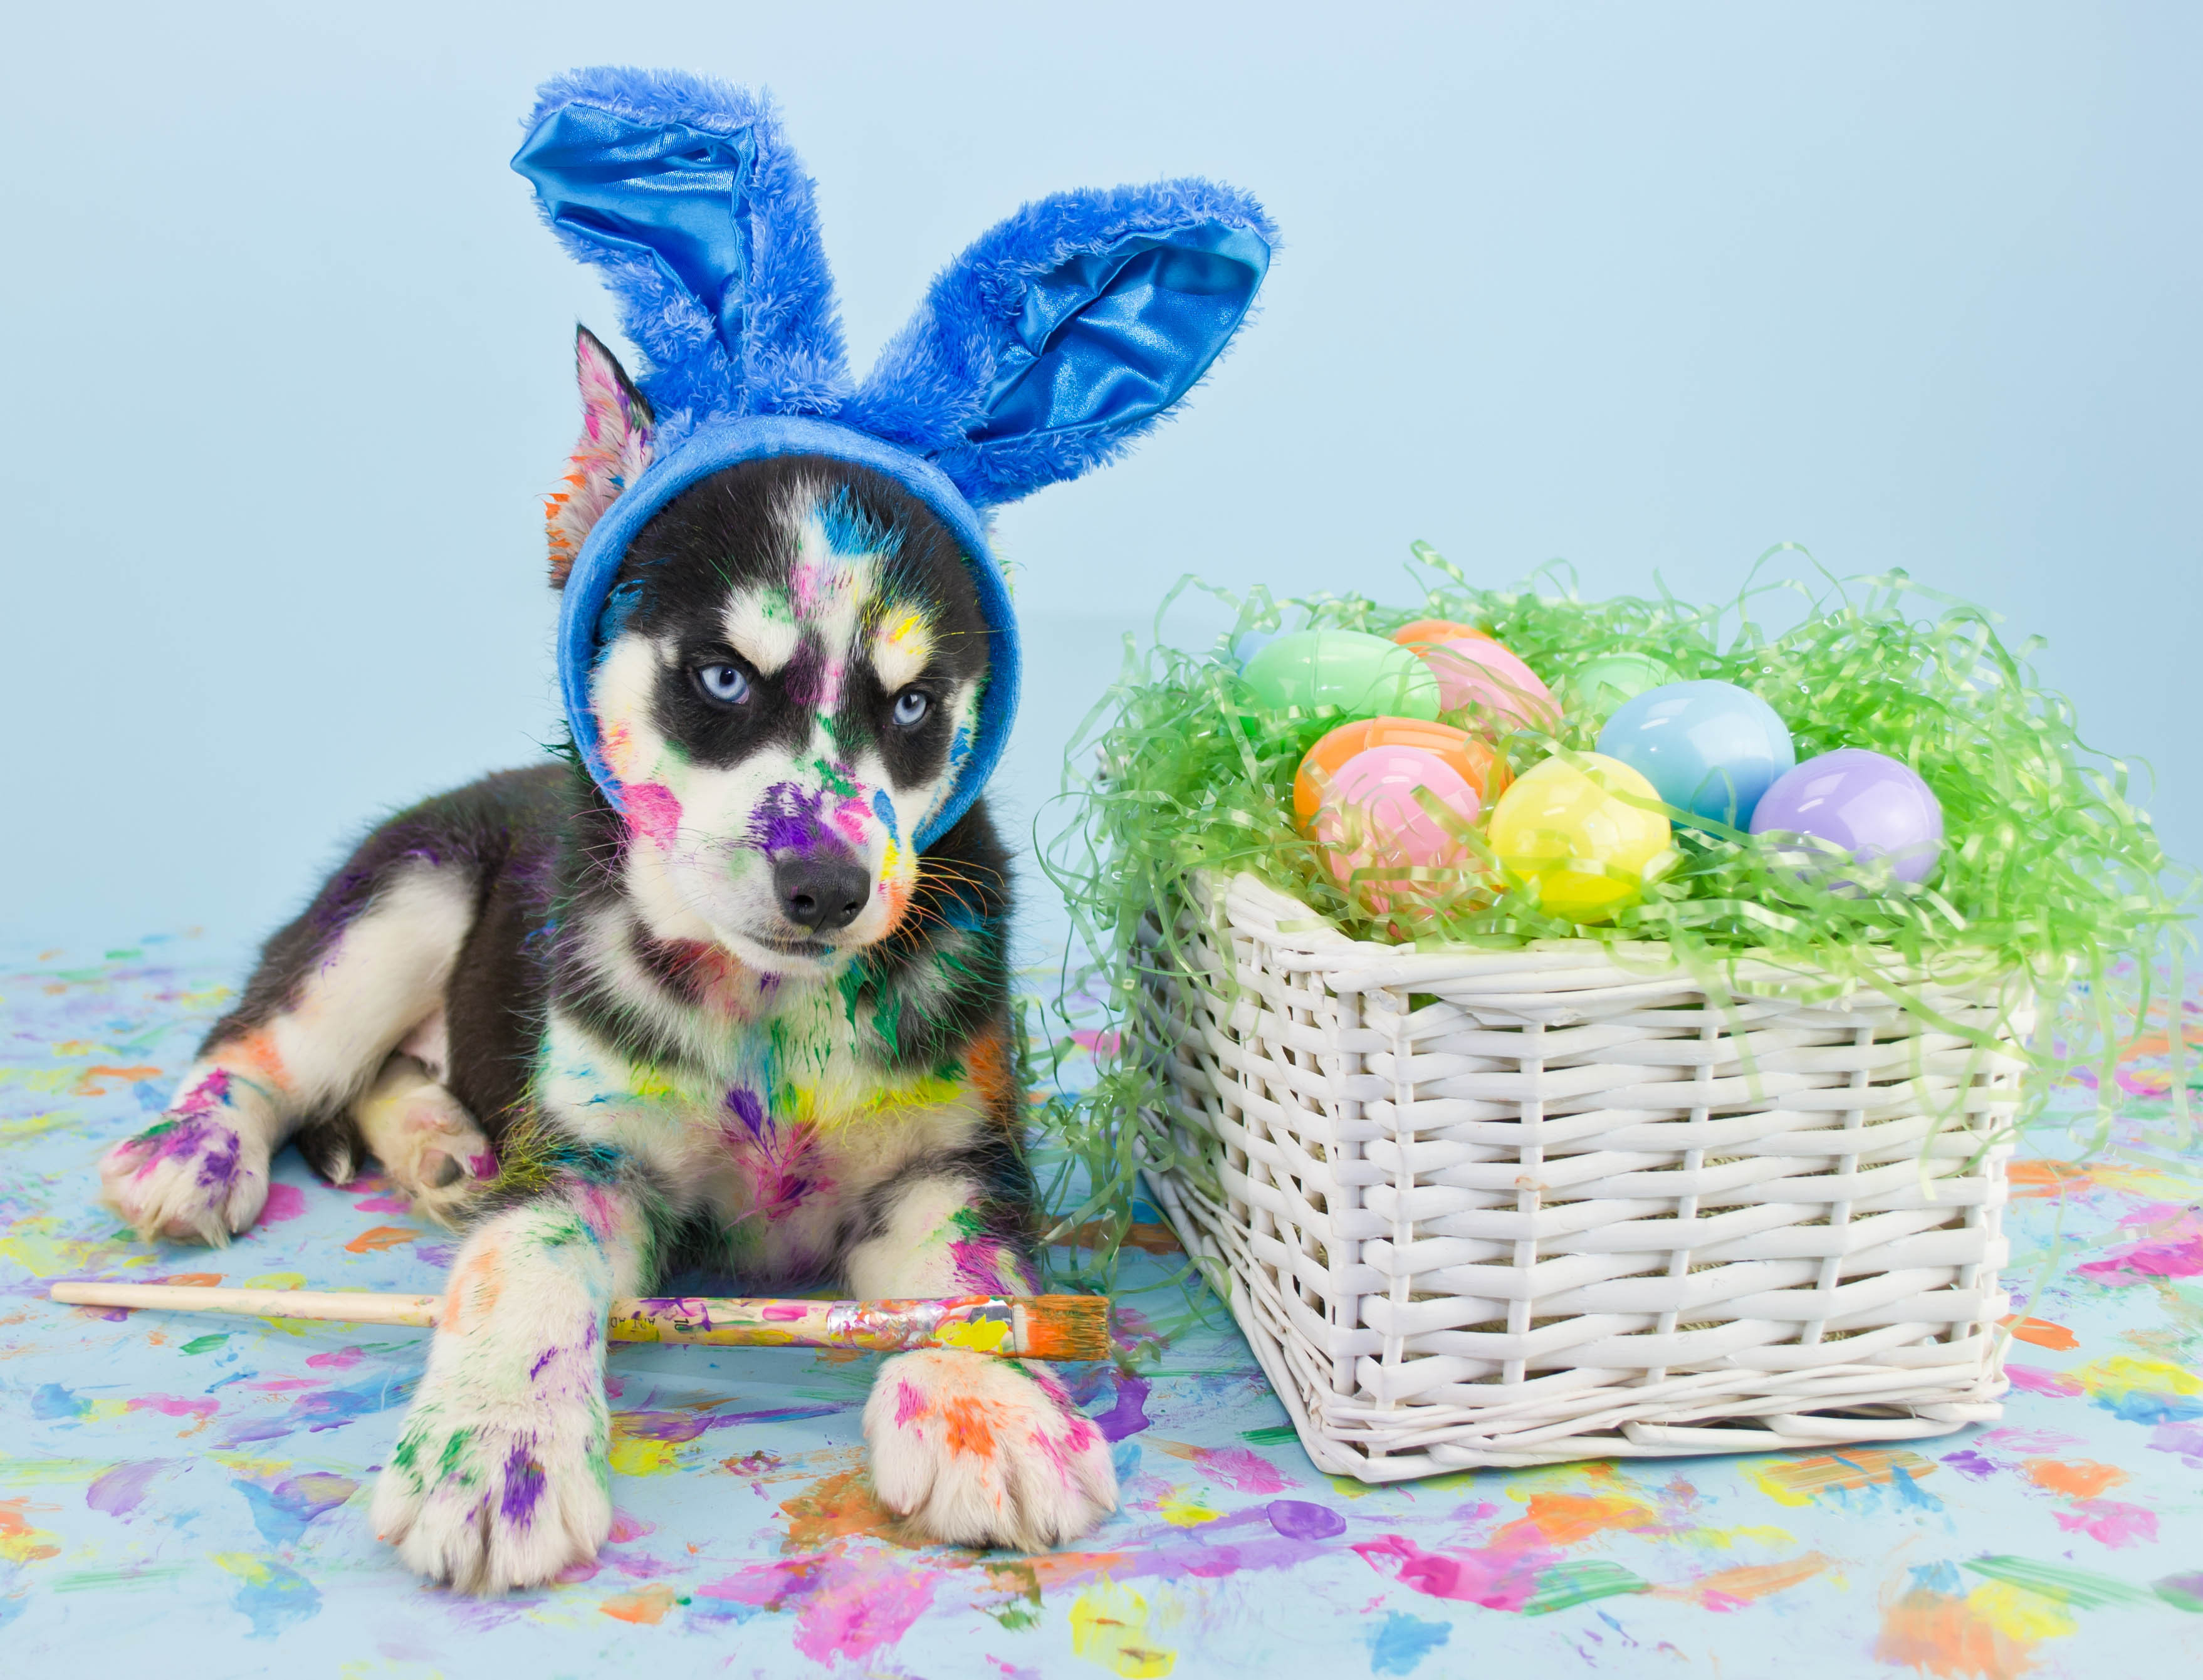 25 Dogs Who Are Posing For Their Easter Greeting Cards - Dogtime